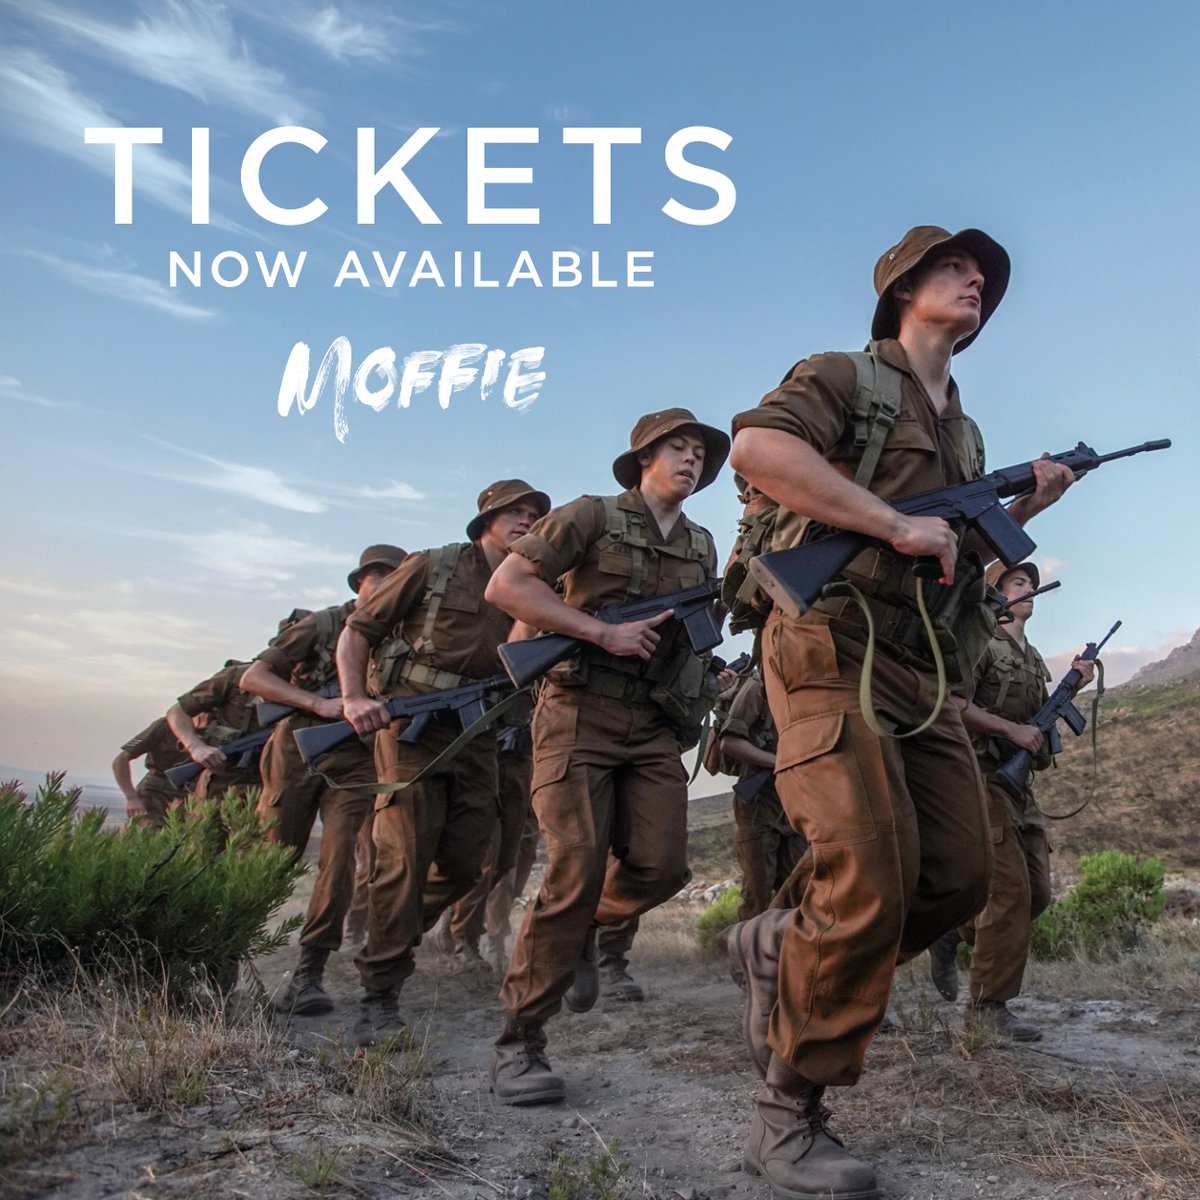 Rally the troops! It's release week and all ticket sales links are now live. We cannot wait to show you our film. Find your closest cinema and get your tickets here https://t.co/o7gdgfe3wc https://t.co/rr0W25JKAA